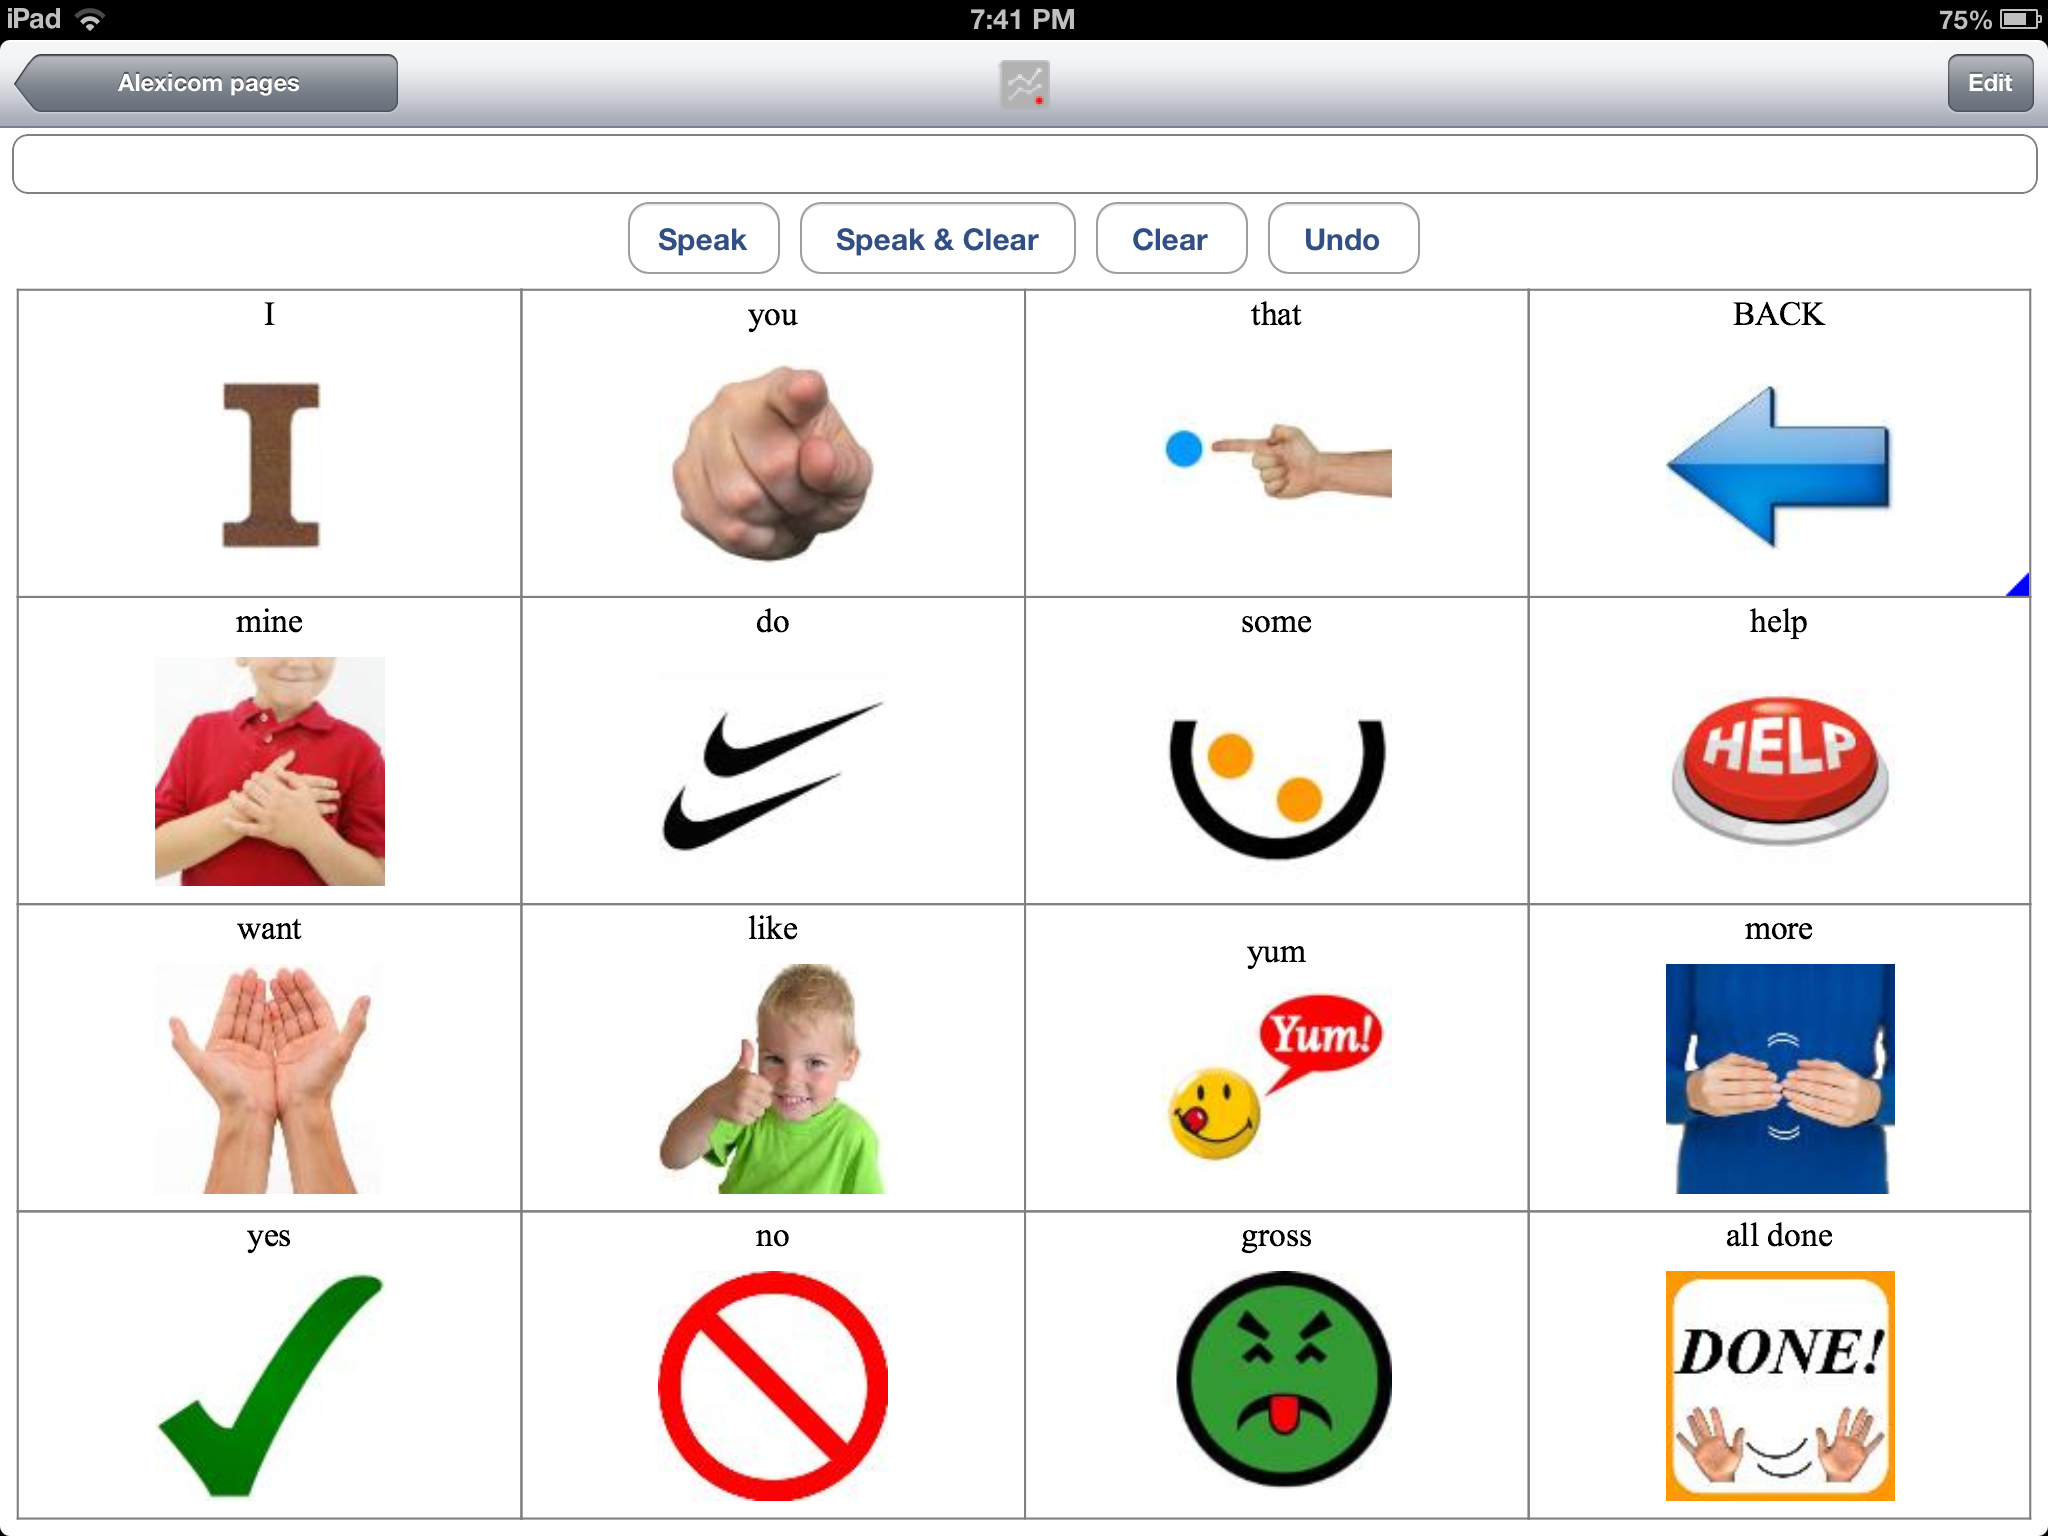 Core Words Alexicom Aac And Elements In Itunes